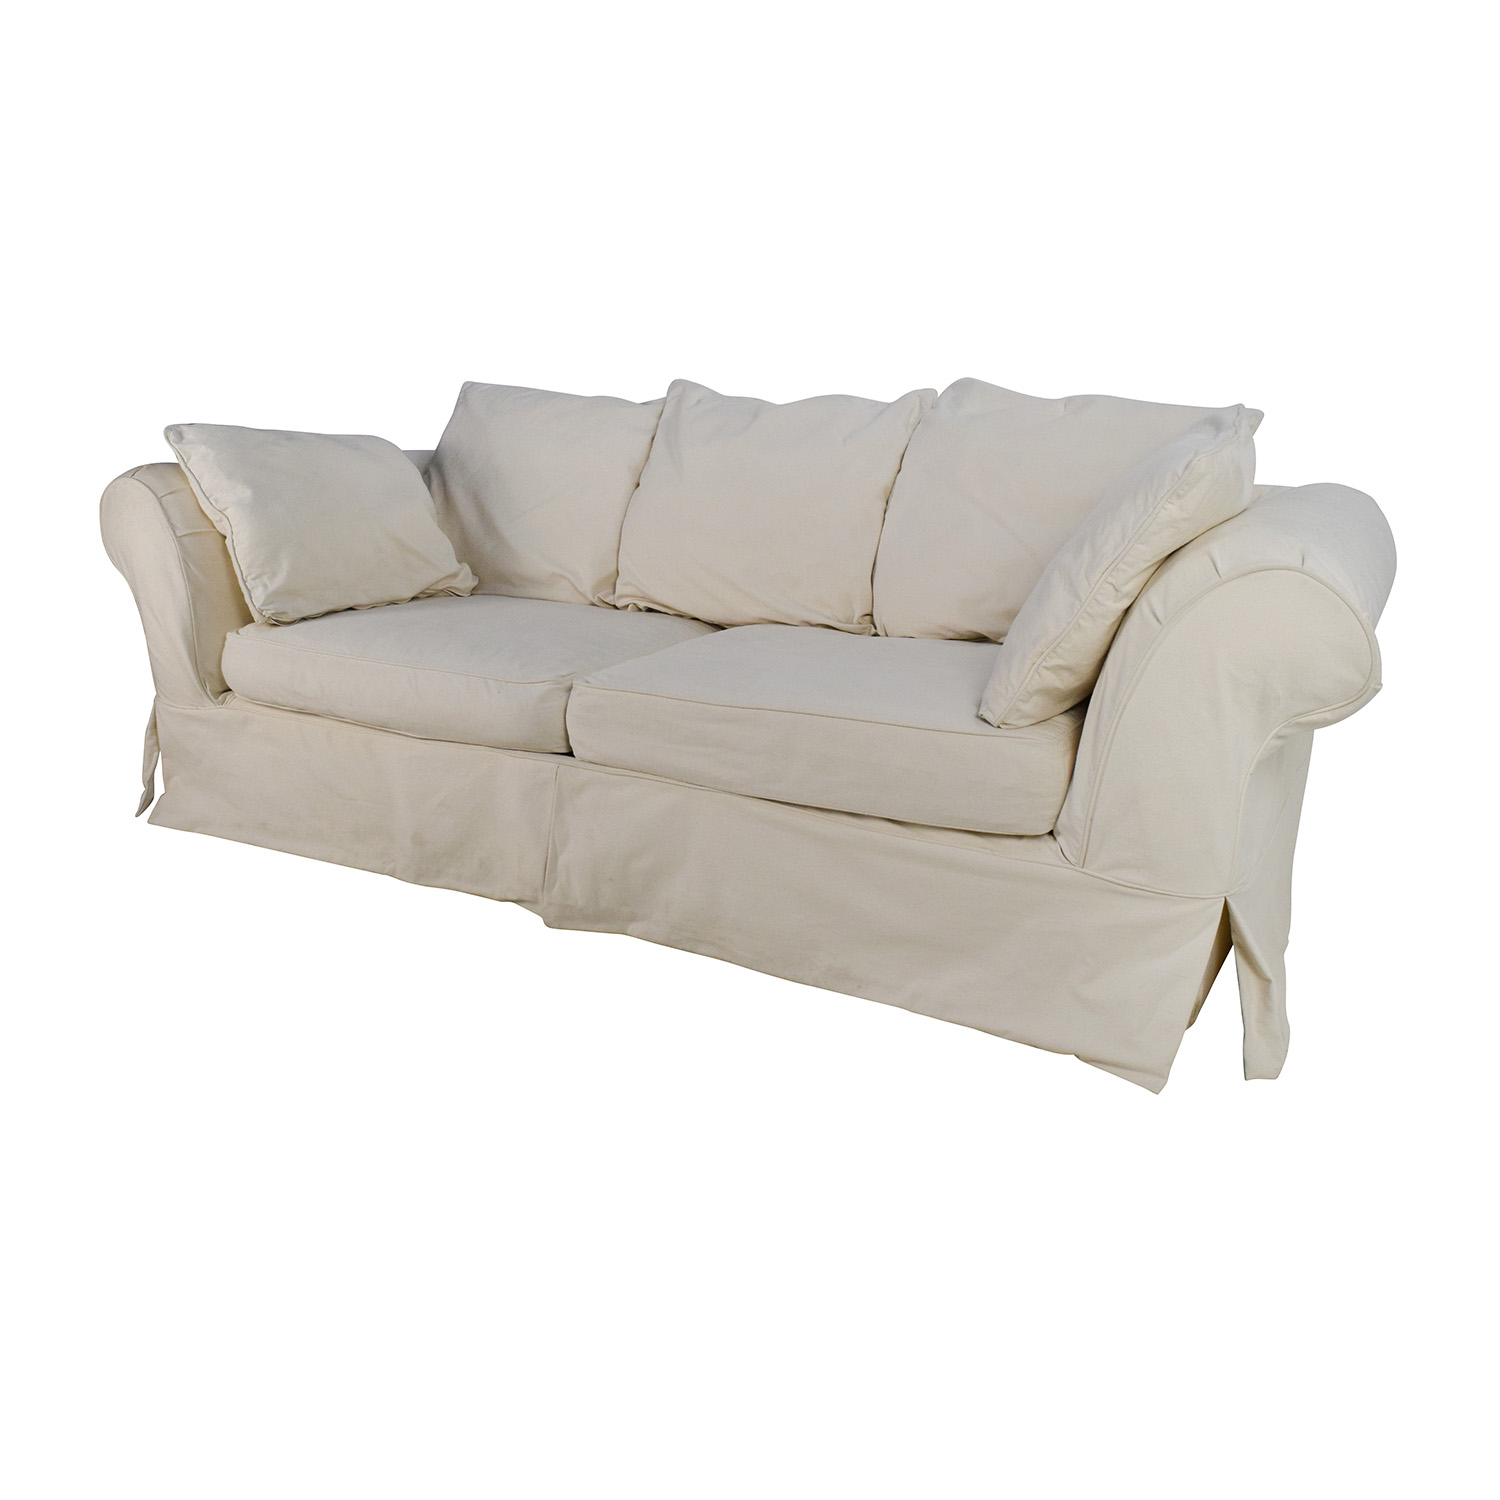 89 Off Jennifer Convertibles Jennifer Convertibles Linda Slipcovered Sofa Sofas